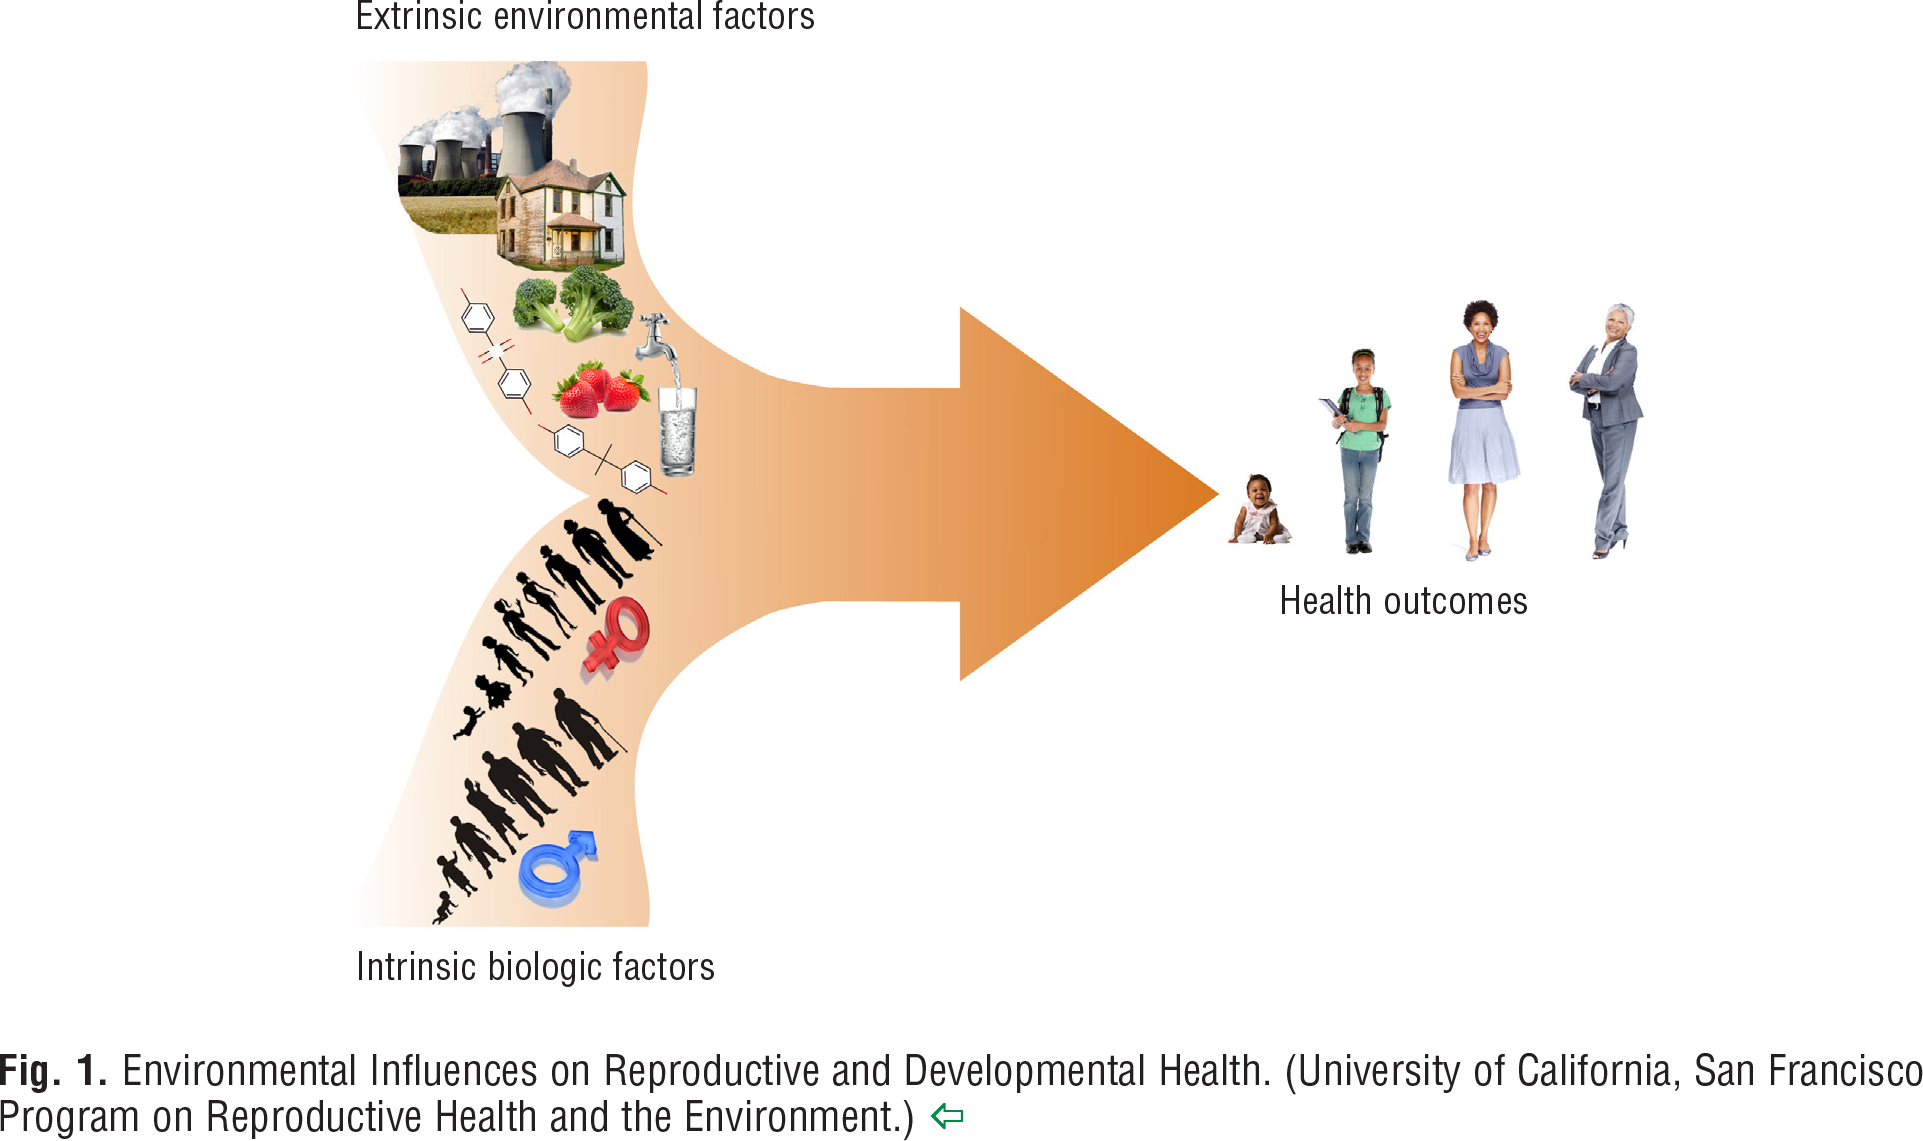 Fig. 1 Environmental Influences on Reproductive and Developmental Health. (University of California, San Francisco Program on Reproductive Health and the Environment.)